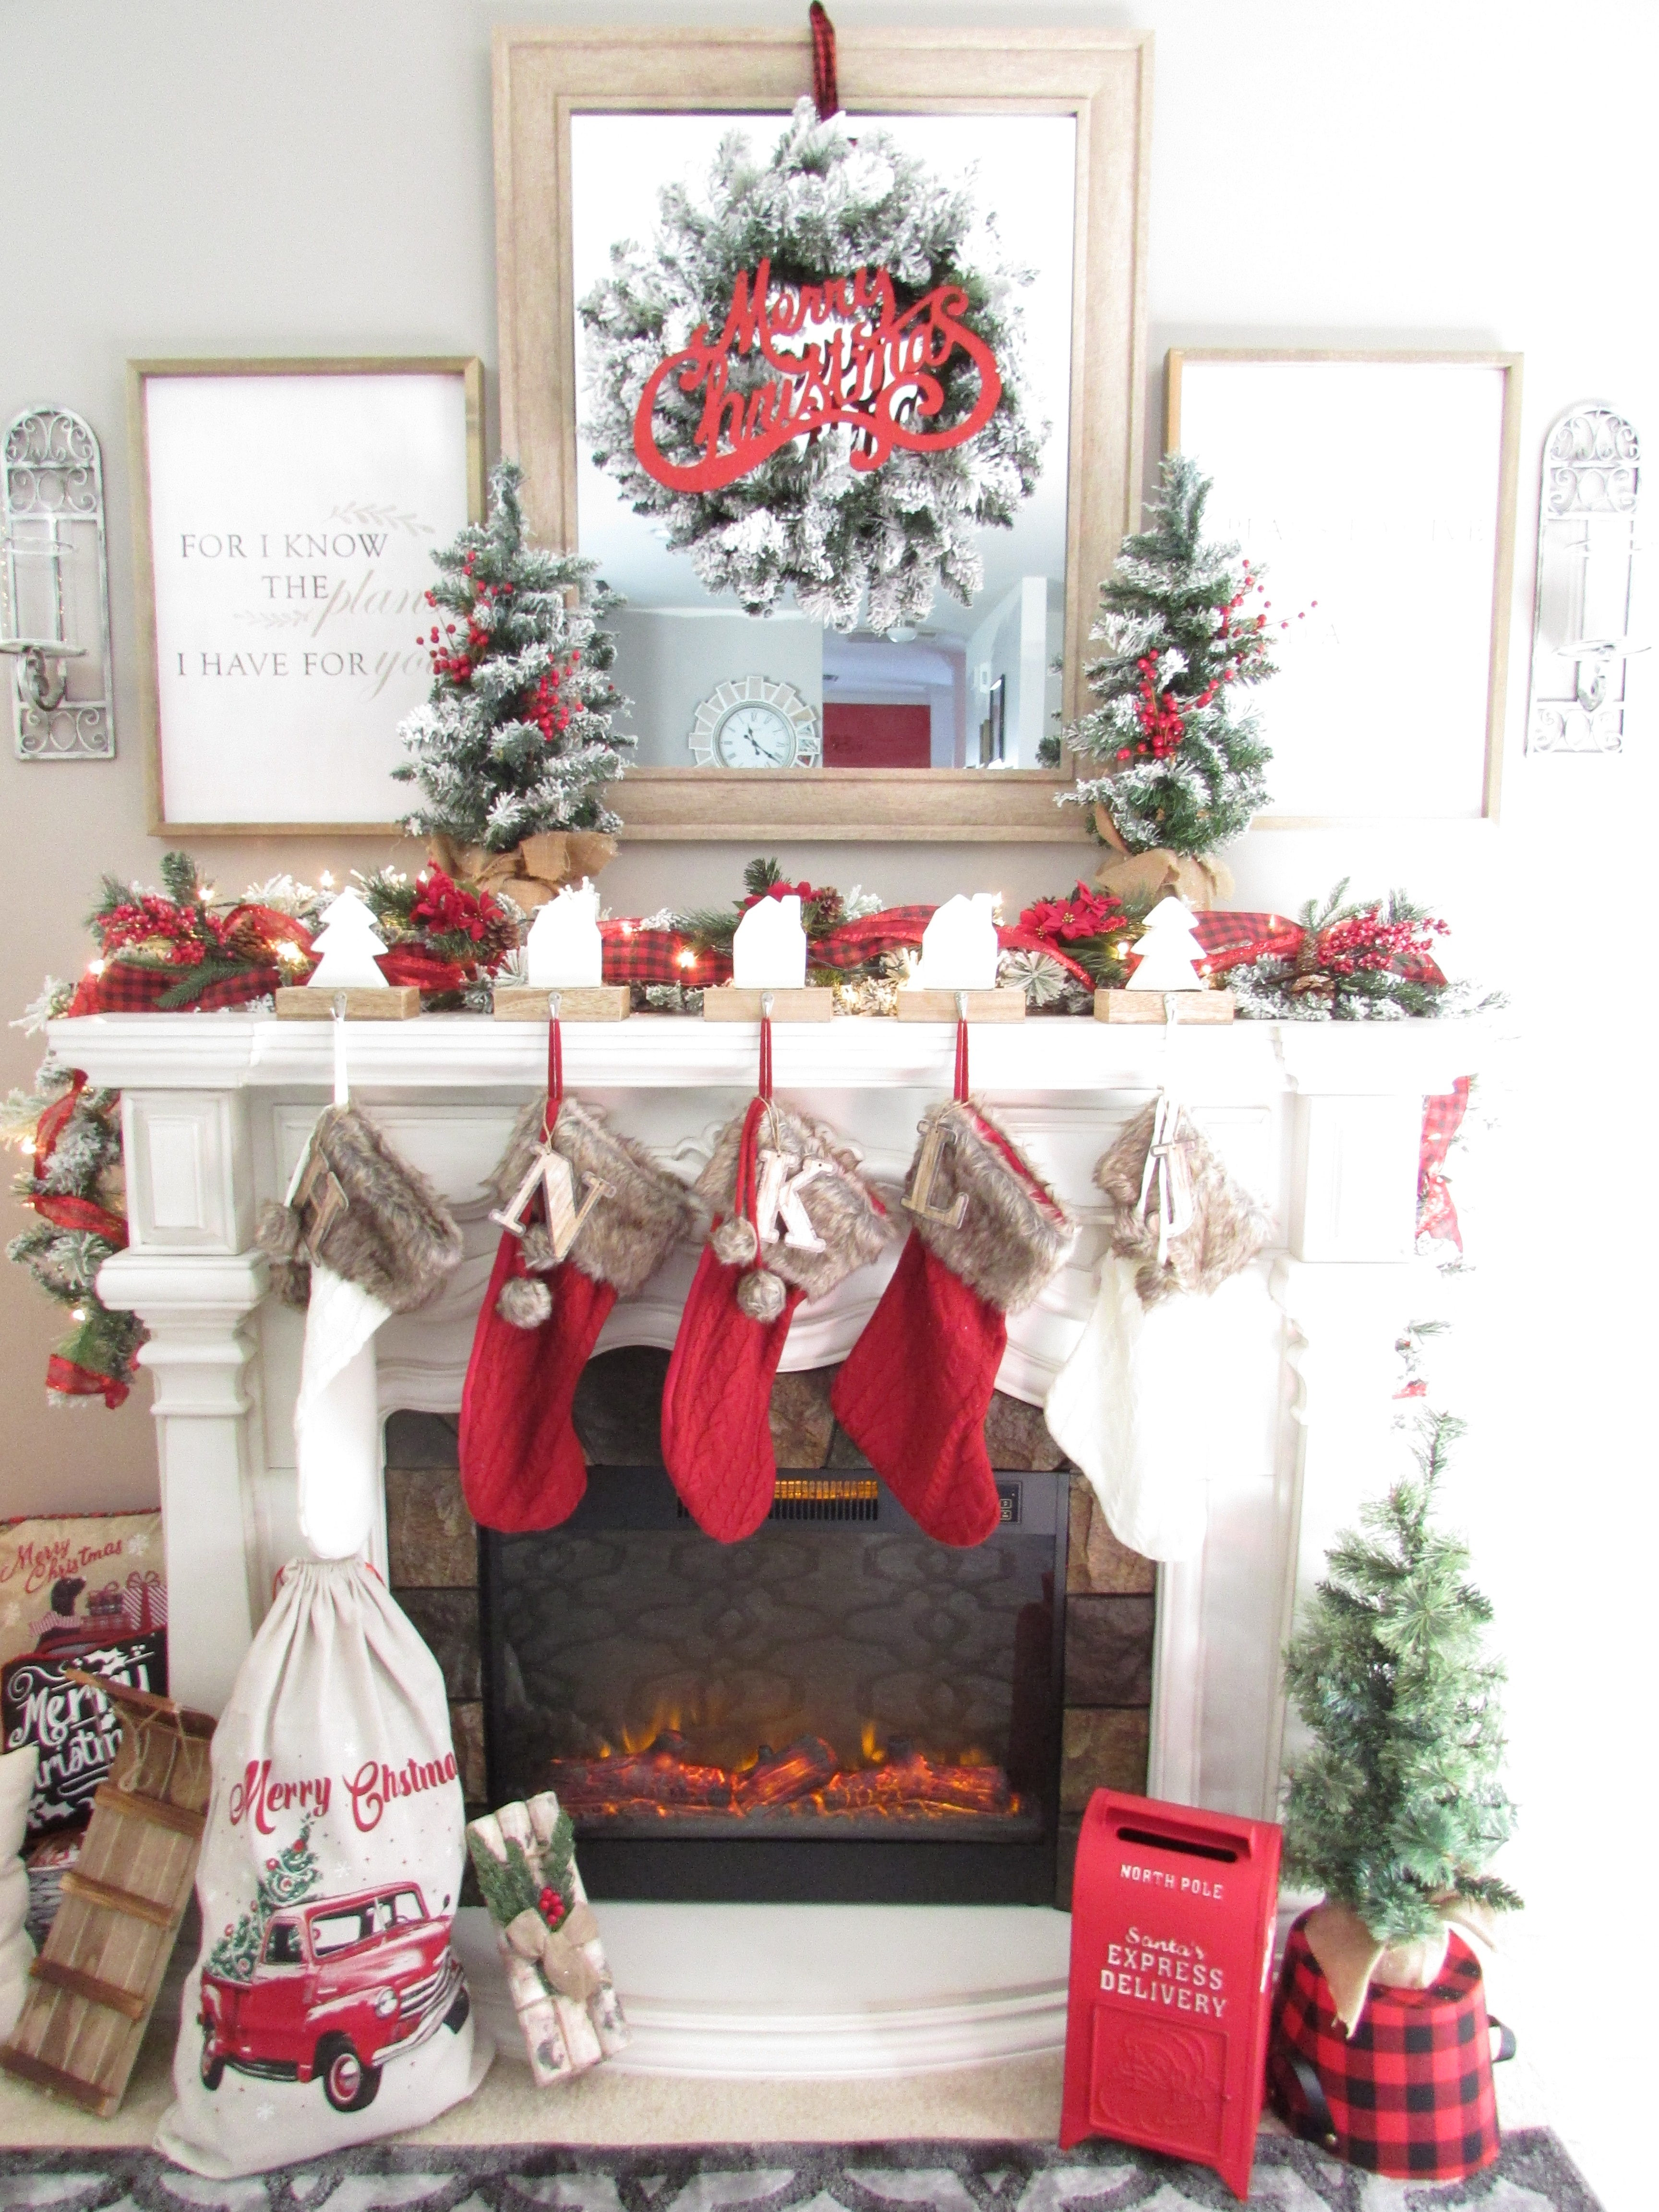 Tips For Creating A Simple Rustic Christmas Mantel